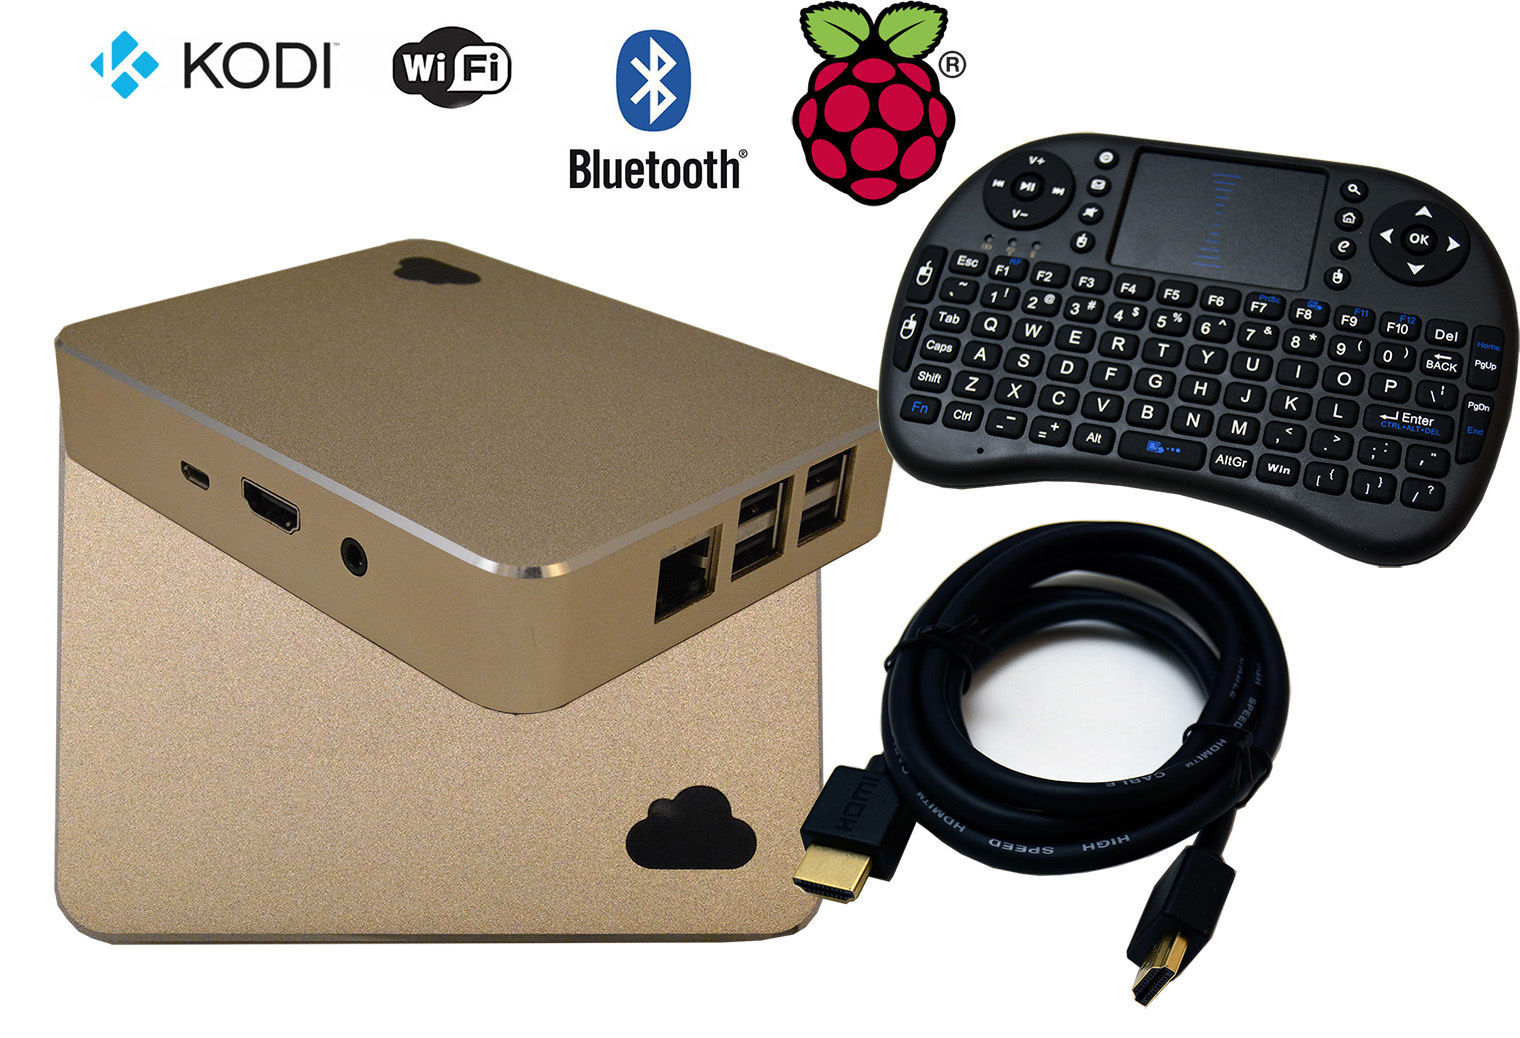 Voodoo Pi Raspberry Pi 3 model B TV Box, XBMC Fully Loaded KODI 17.3 PPV Movies